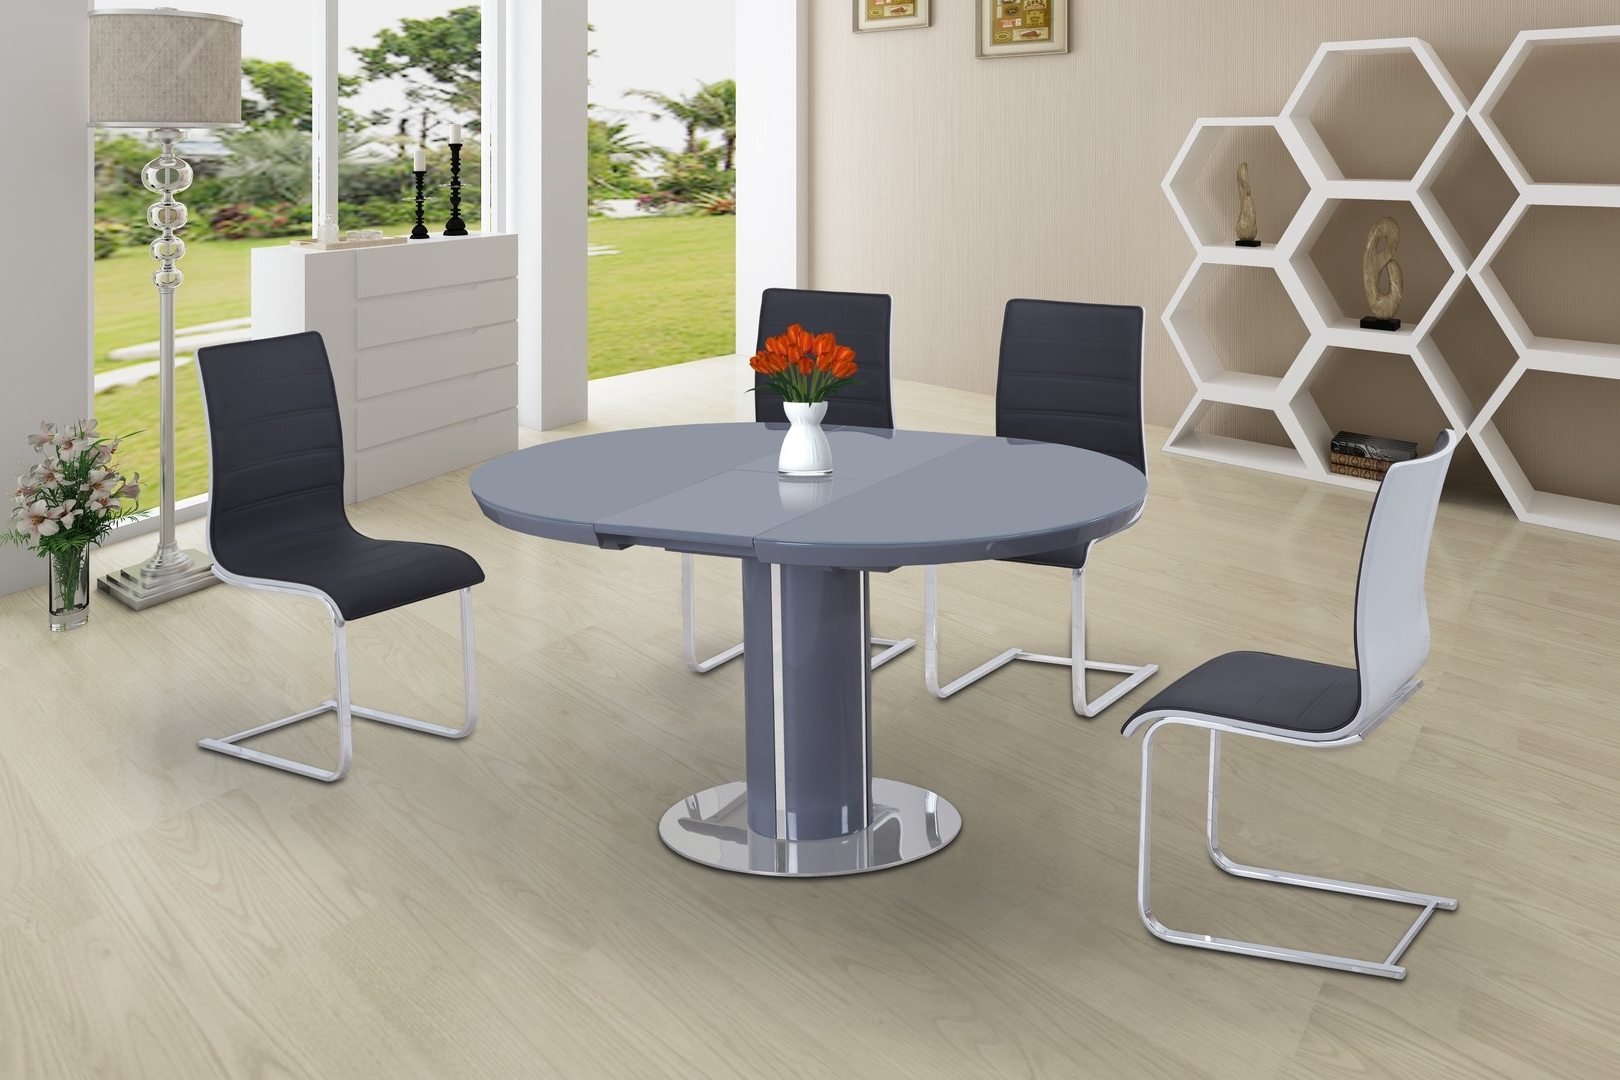 Round High Gloss Glass Dining And 6 Grey With White Chairs within Well known Grey Glass Dining Tables